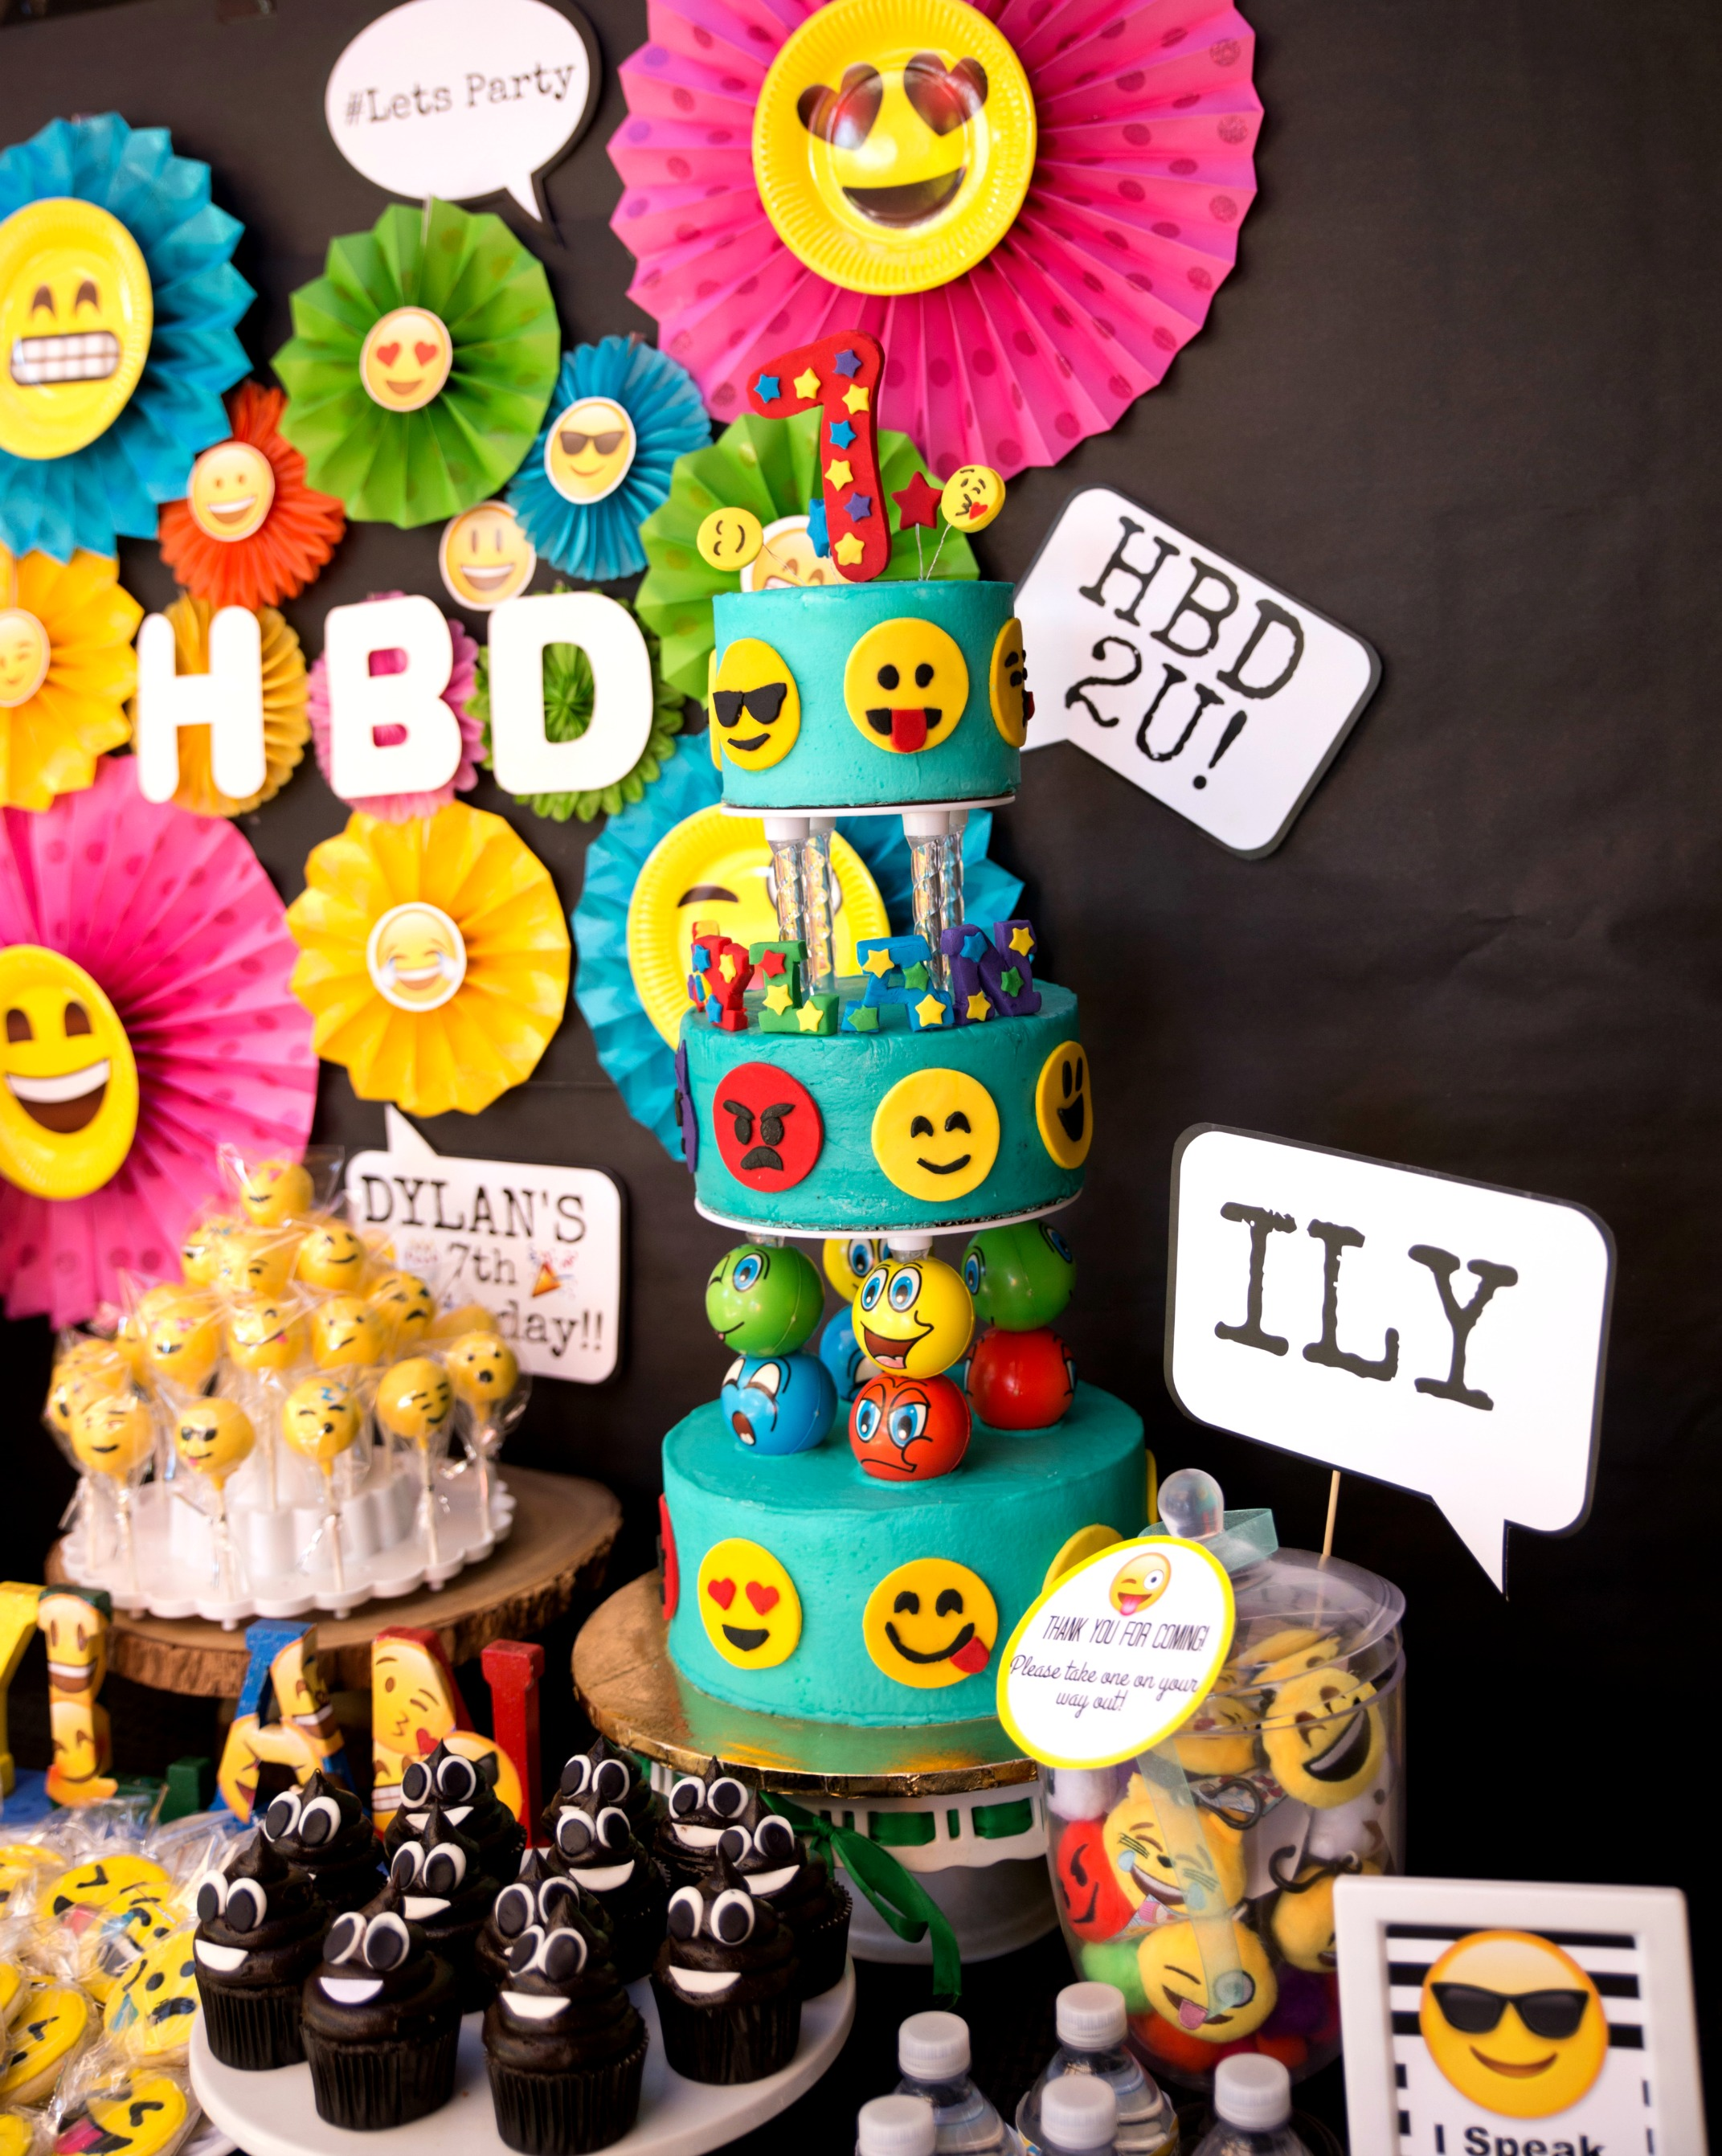 A Jumper 2 Giant Trampolines An Emoji Game Slide Show Birthday Cake And Pinata Goodcake